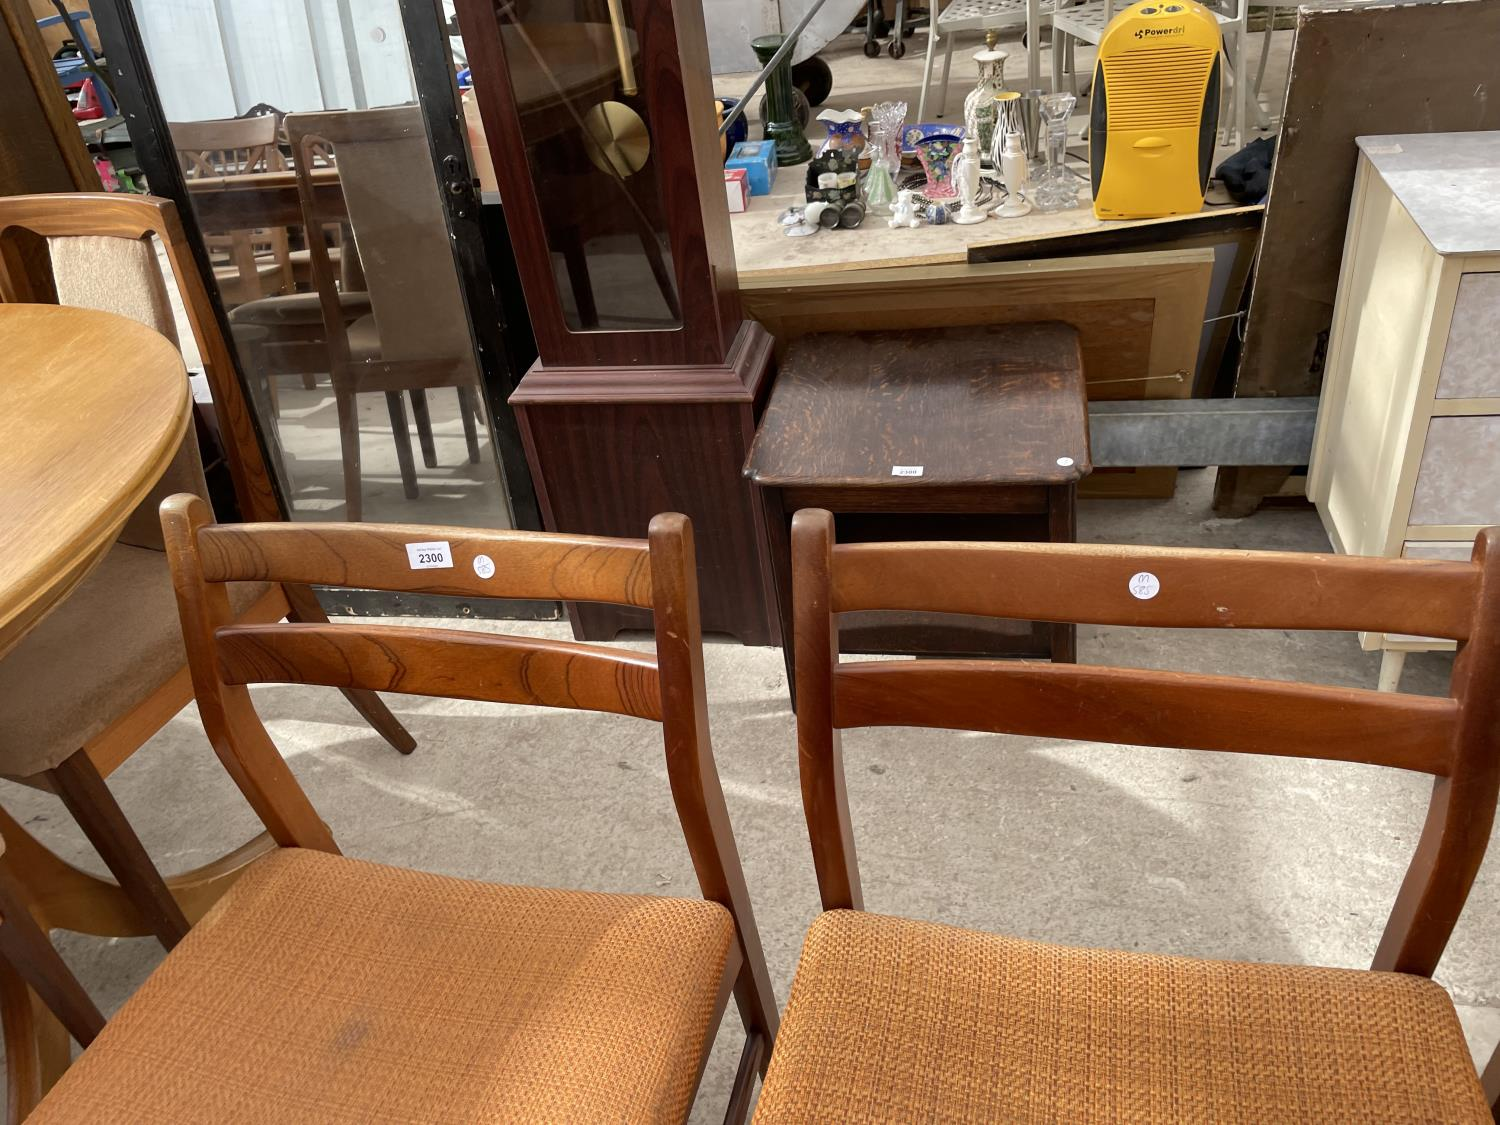 FOUR RETRO TEAK DINING CHAIRS - Image 2 of 5